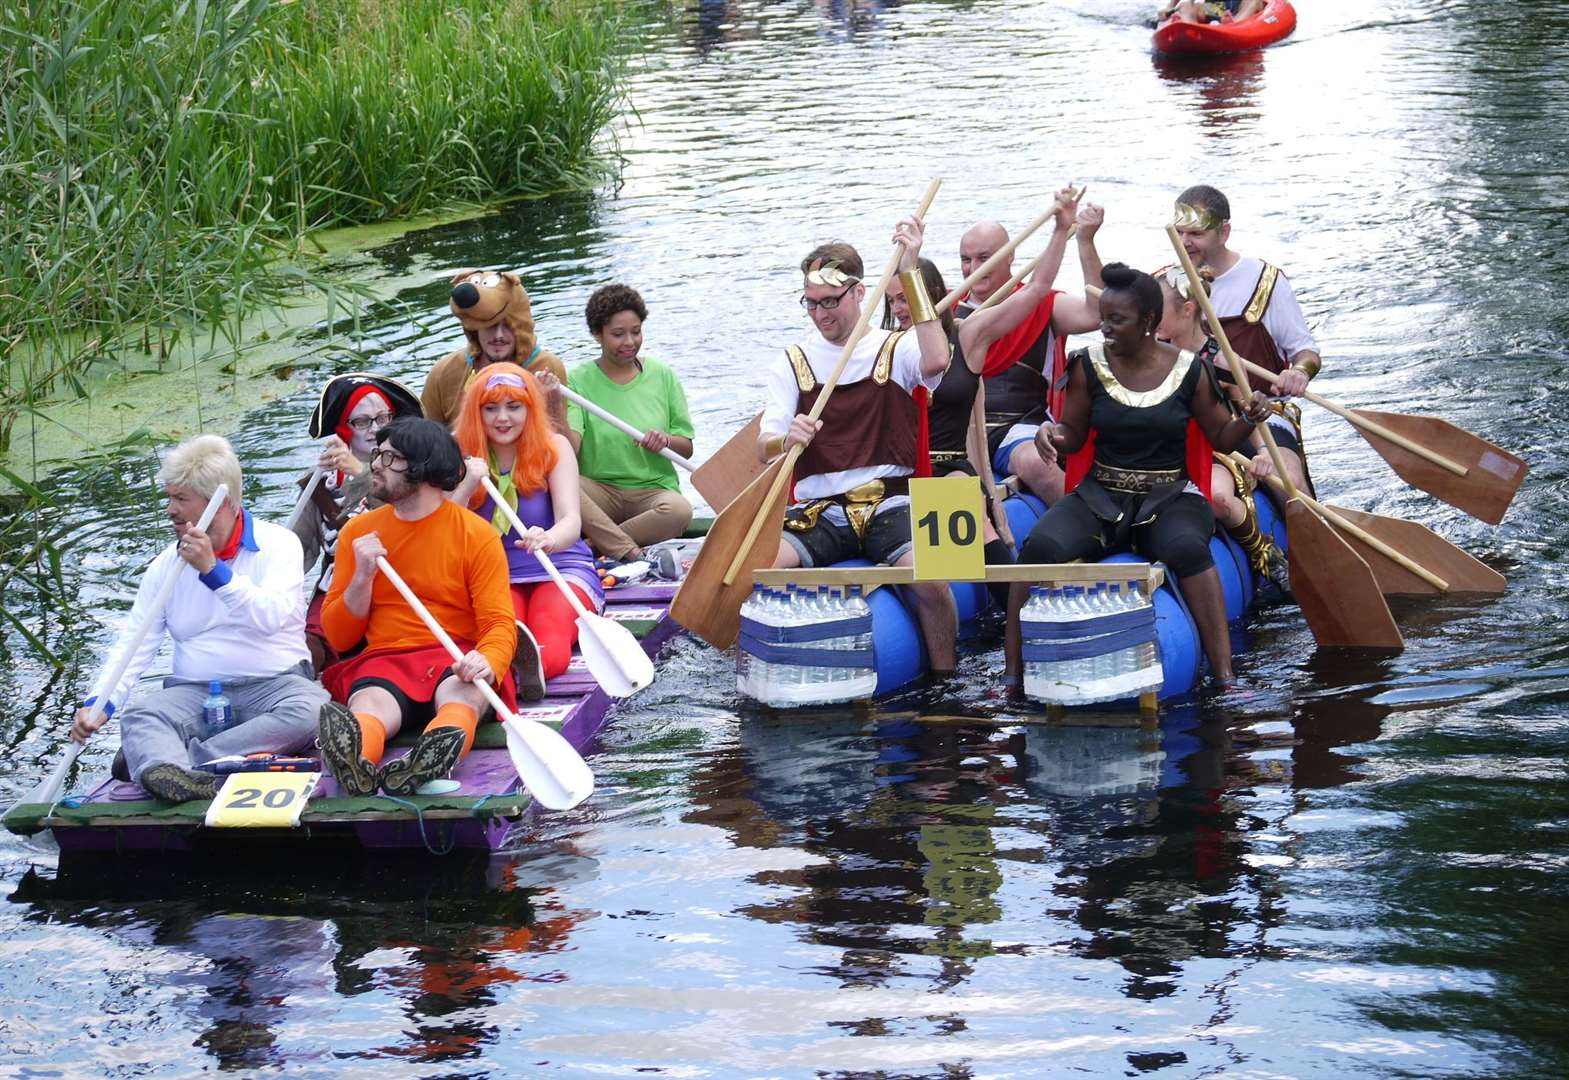 Deepings Raft Race will have a Mardi Gras theme